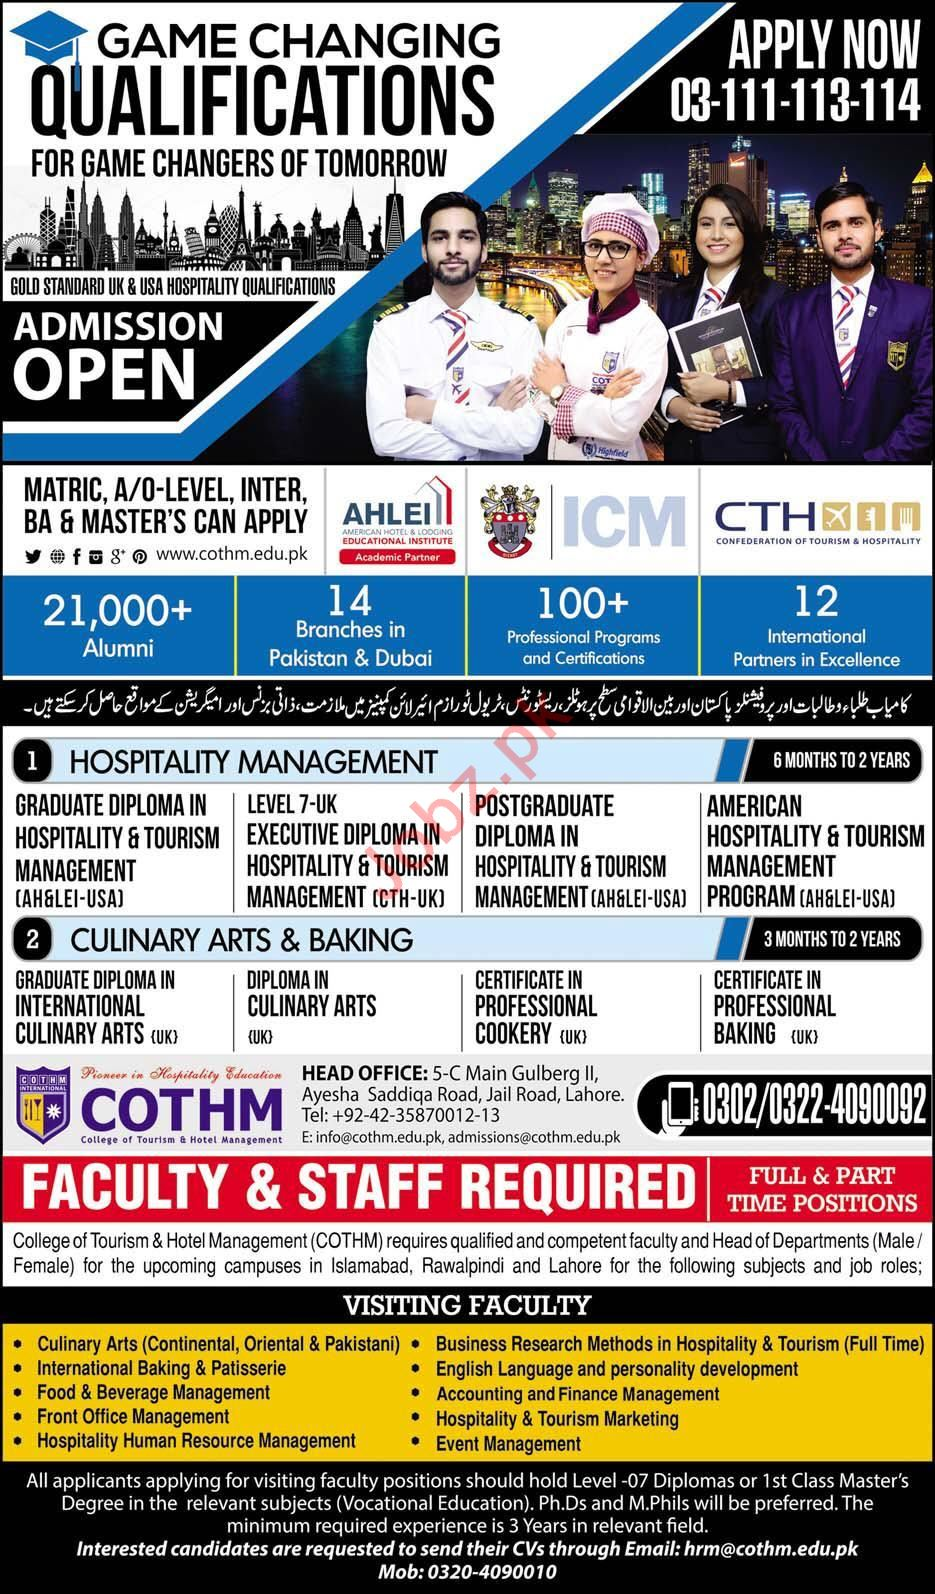 College of Tourism & Hotel Management COTHM Faculty Required